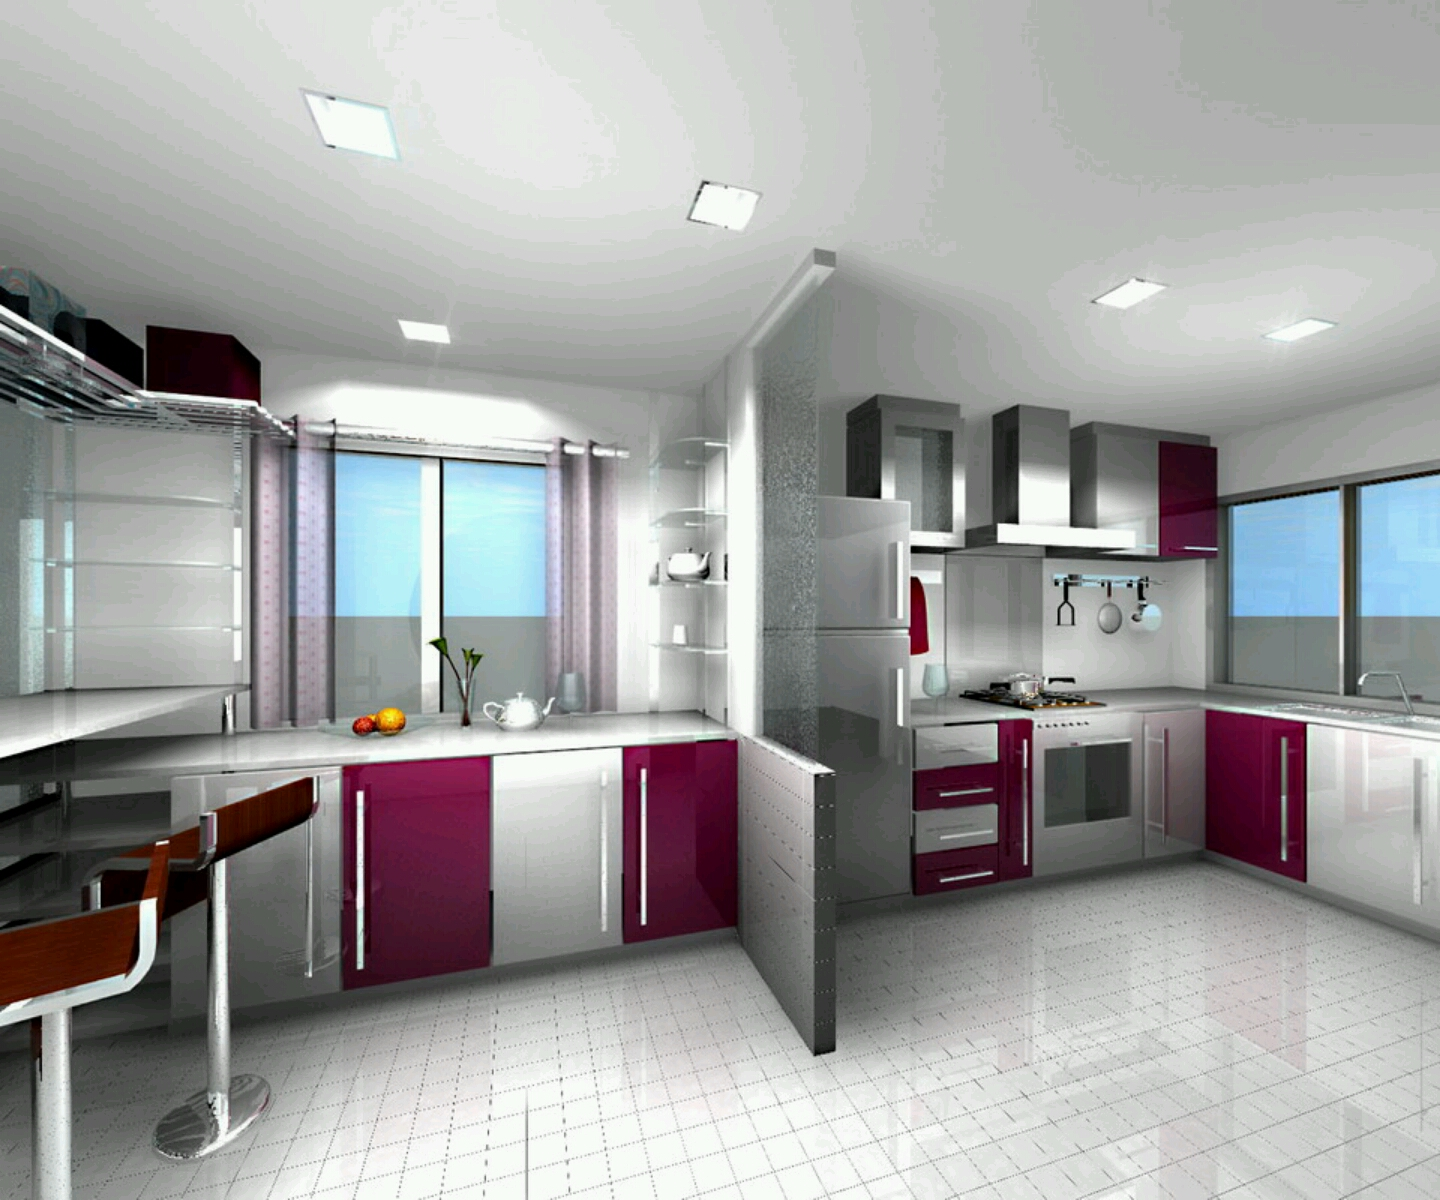 Modern homes ultra modern kitchen designs ideas modern home designs - Home kitchen design ideas ...